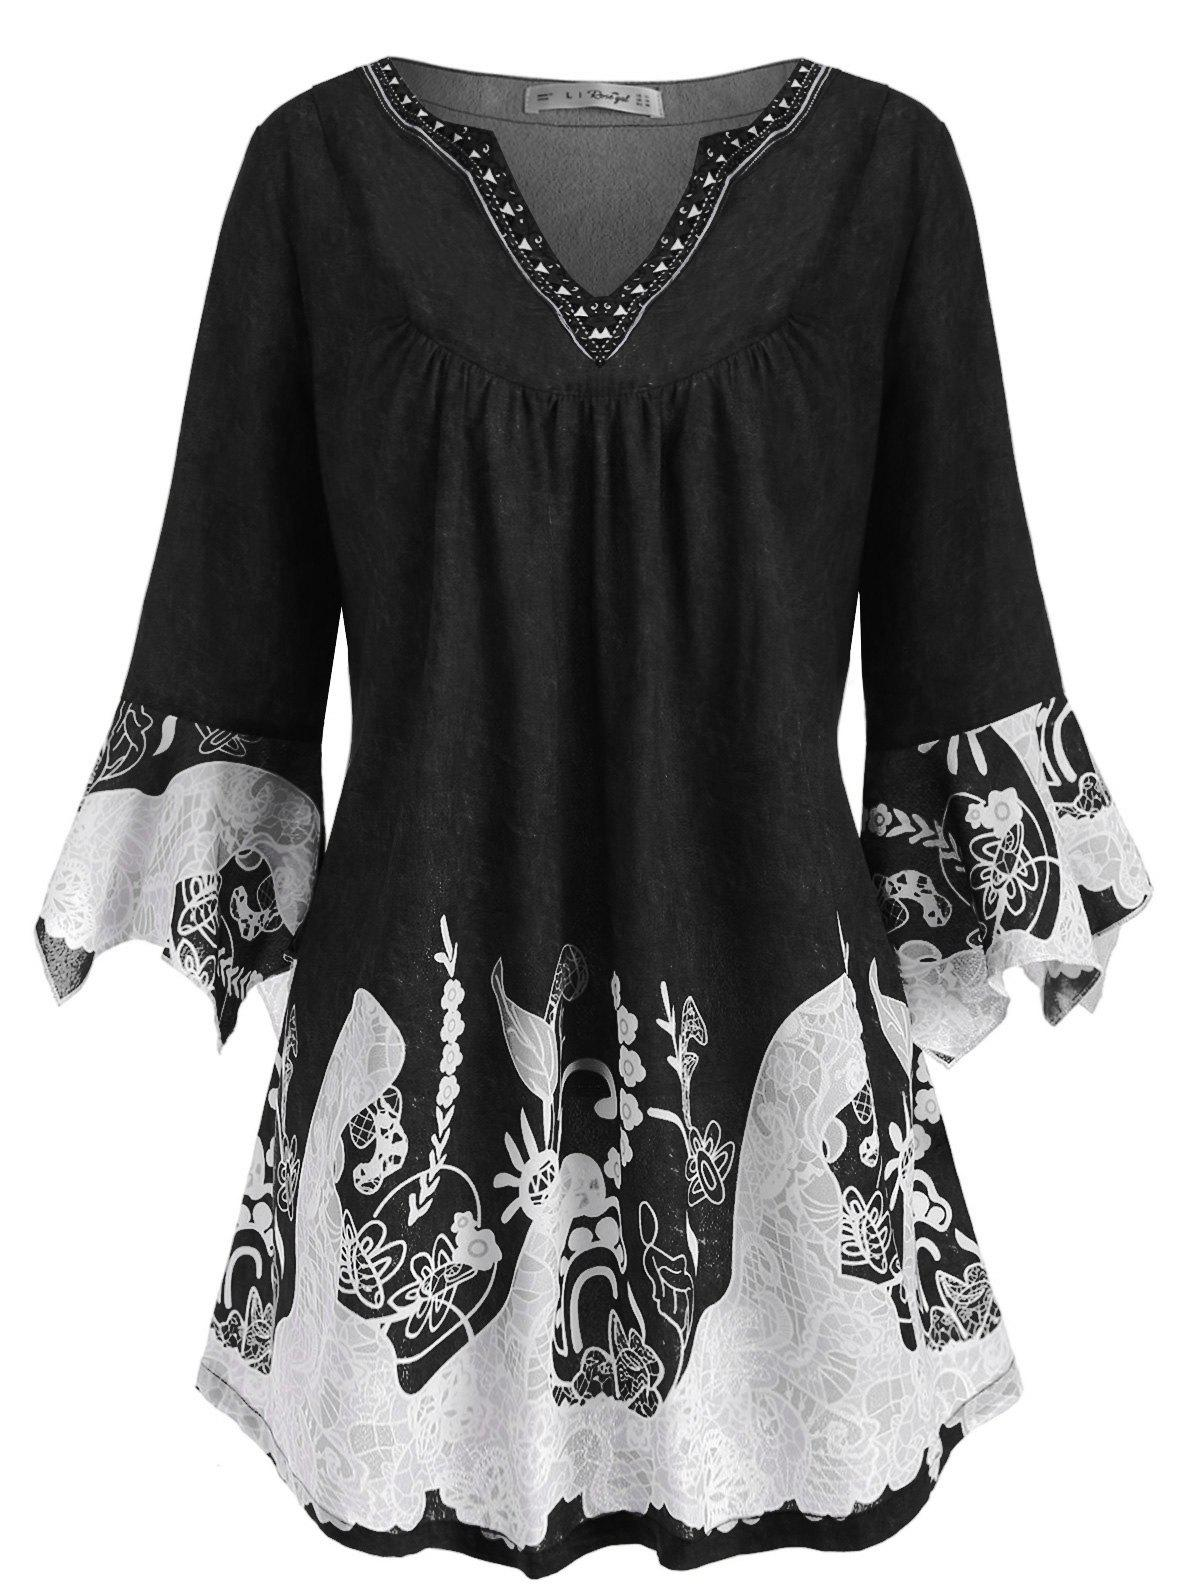 Affordable Notched Flare Sleeve Printed Plus Size Top